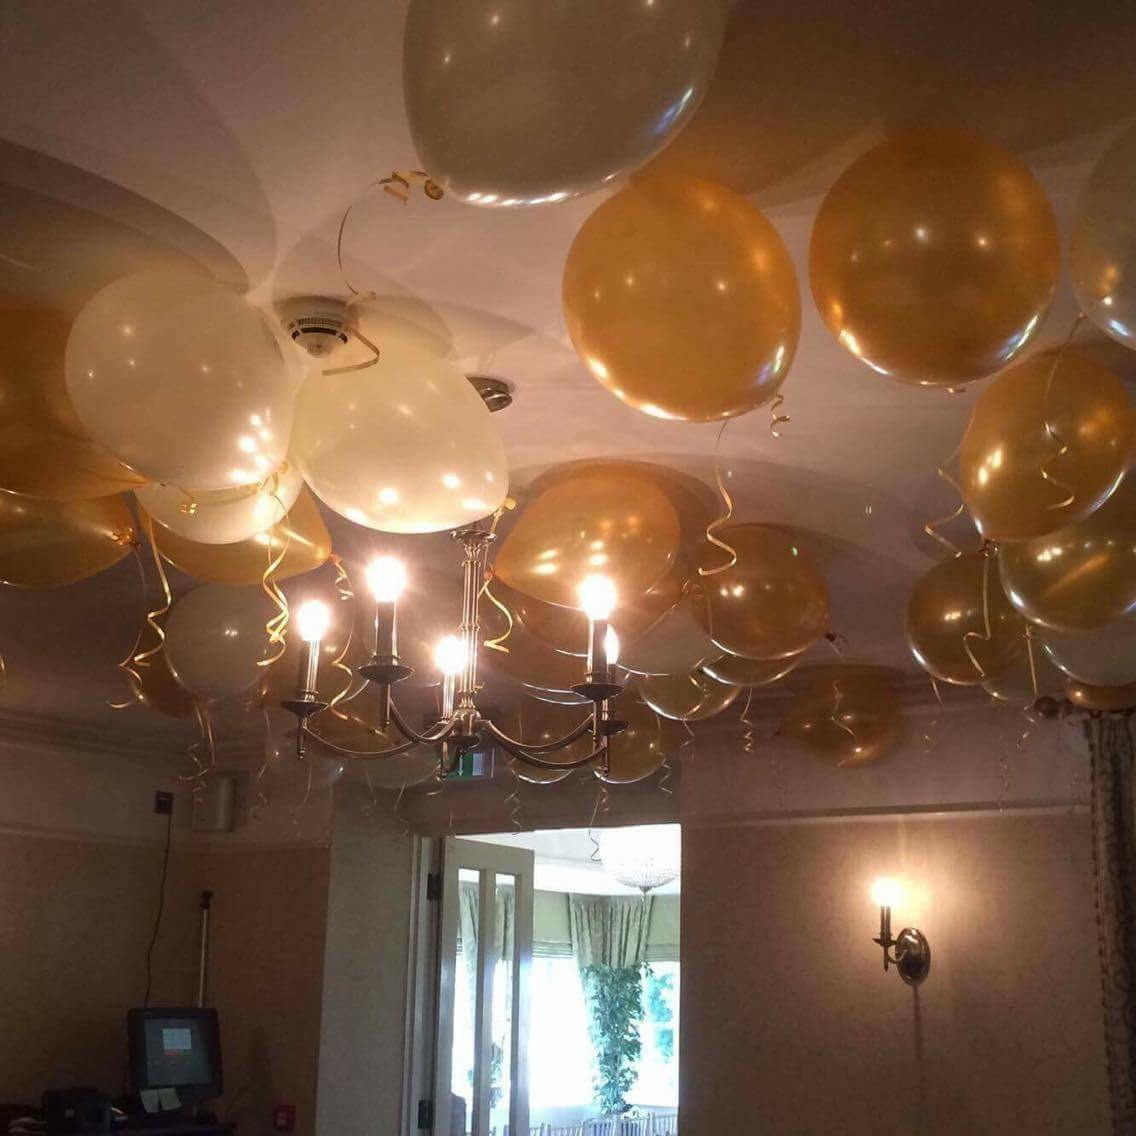 Scattered latex balloons